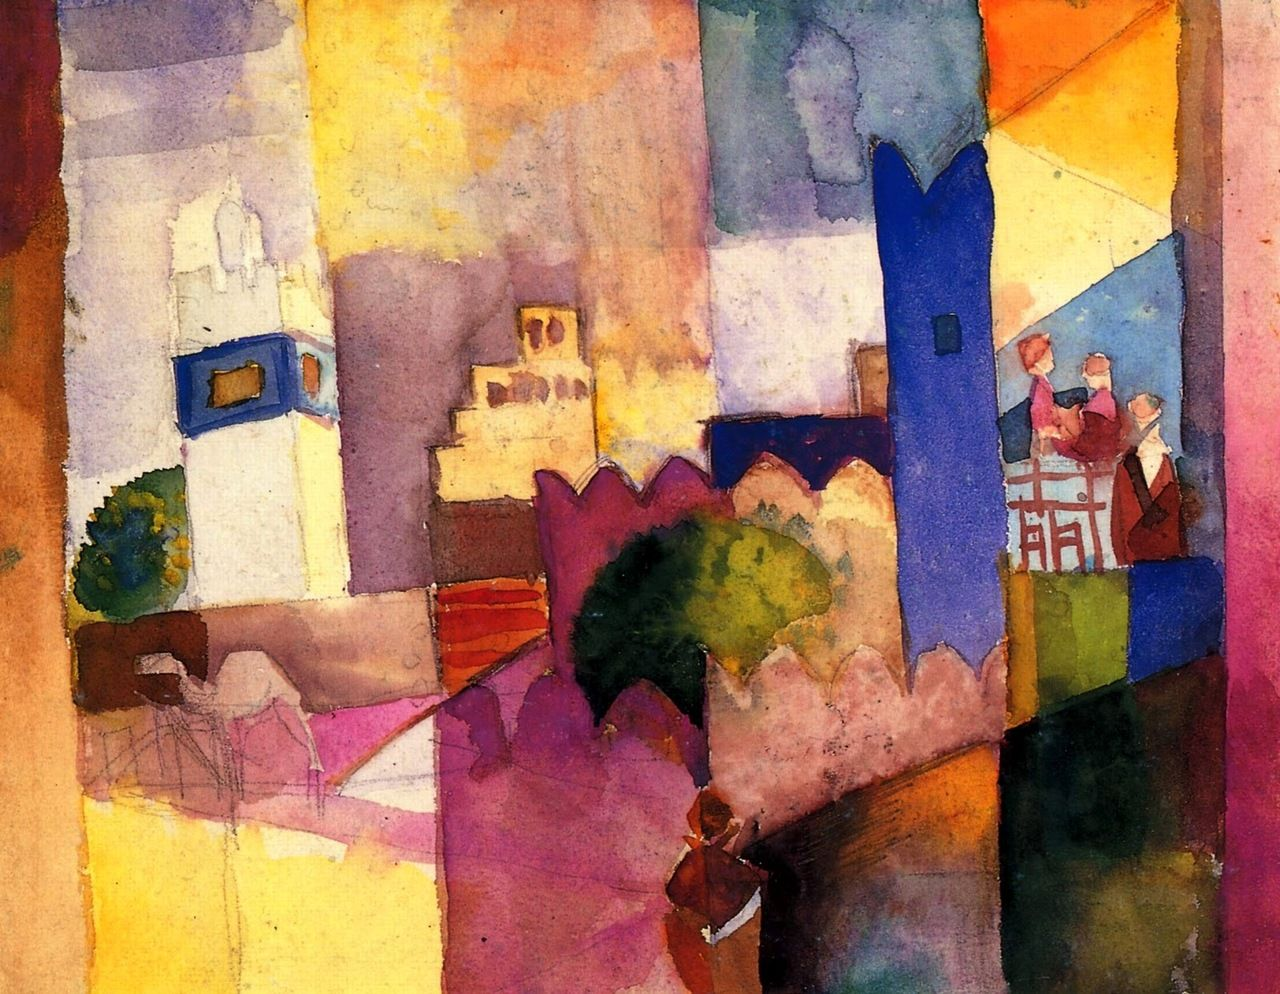 August Macke - 1914 Kairouan III watercolour - showing the influence of orphic cubism.